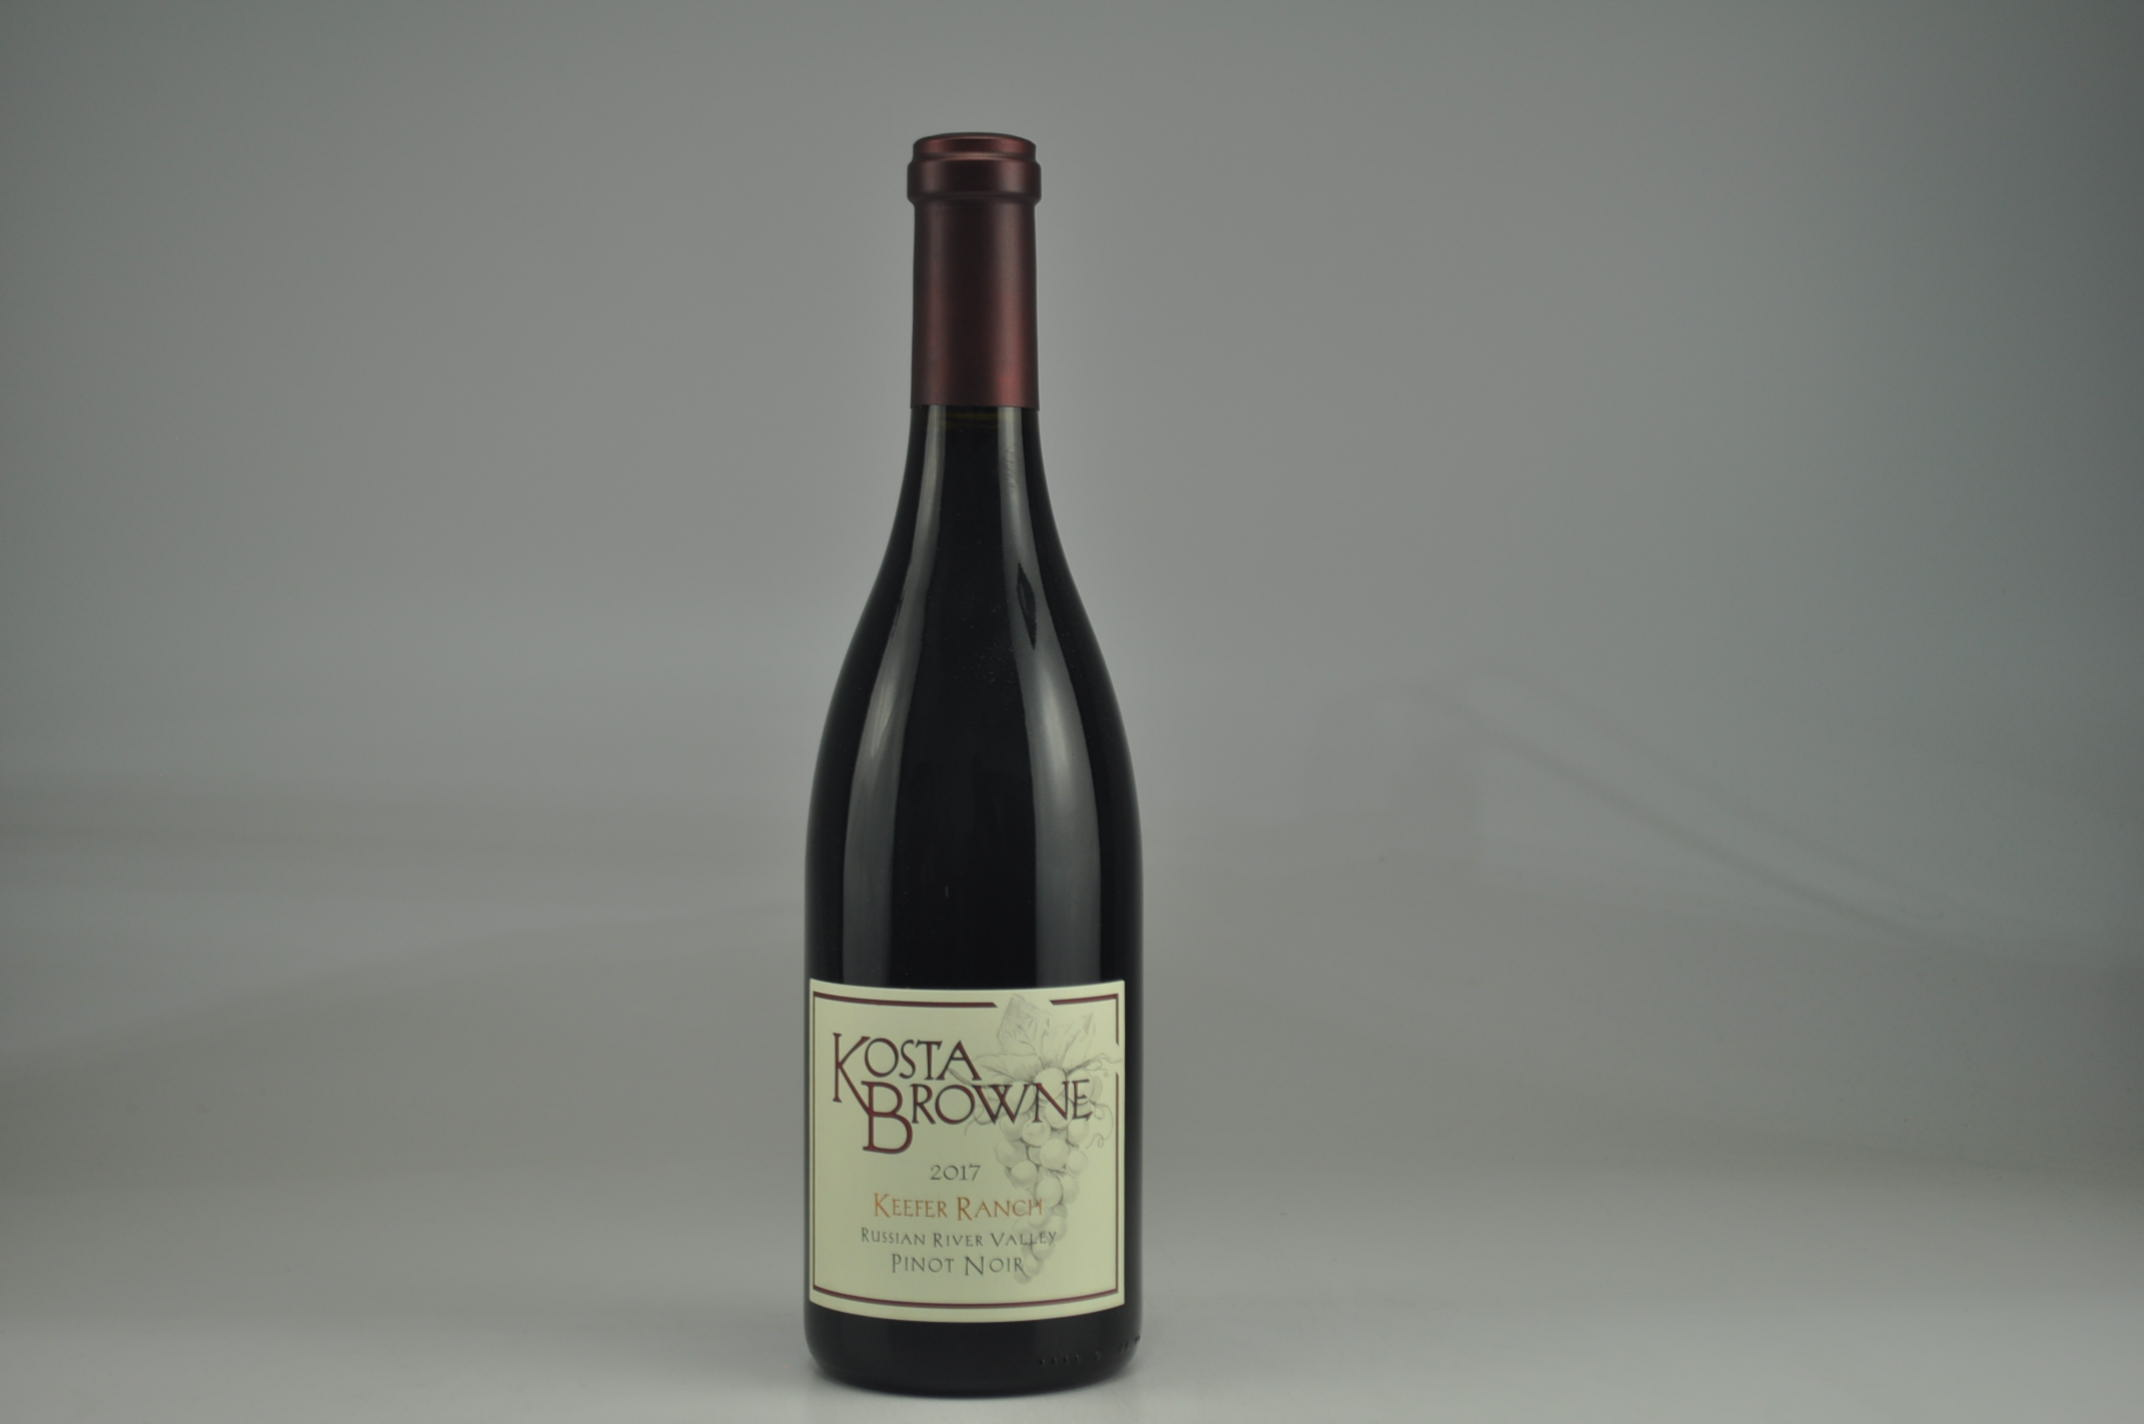 2017 Kosta Browne Pinot Noir Keefer Ranch RP--93